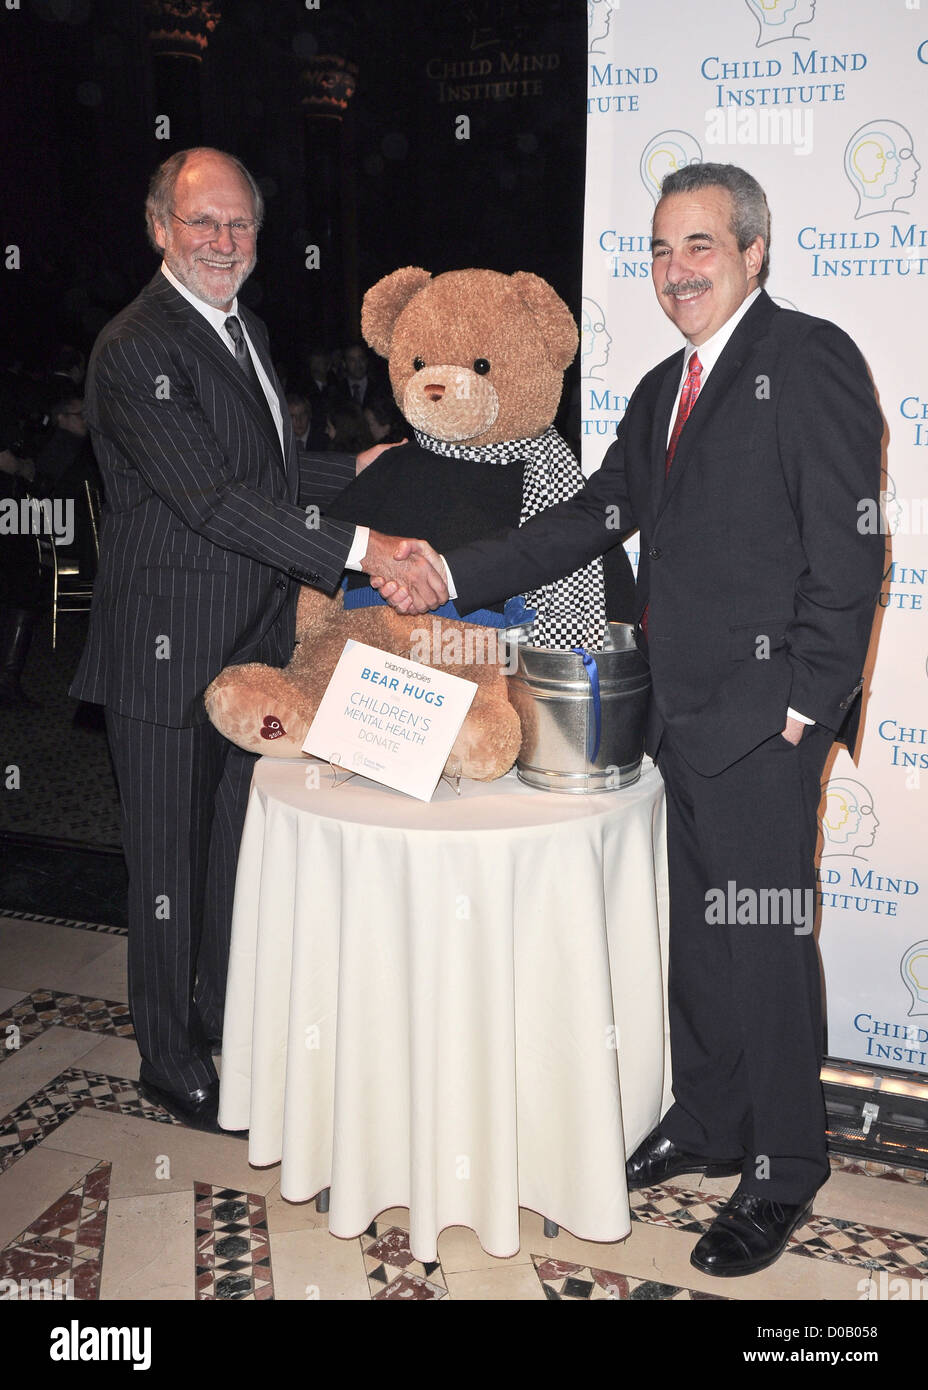 John Corzine and Harold S. Koplewicz M.D. First Annual Child Mind Institute Awards Gala - Arrivals New York City, - Stock Image